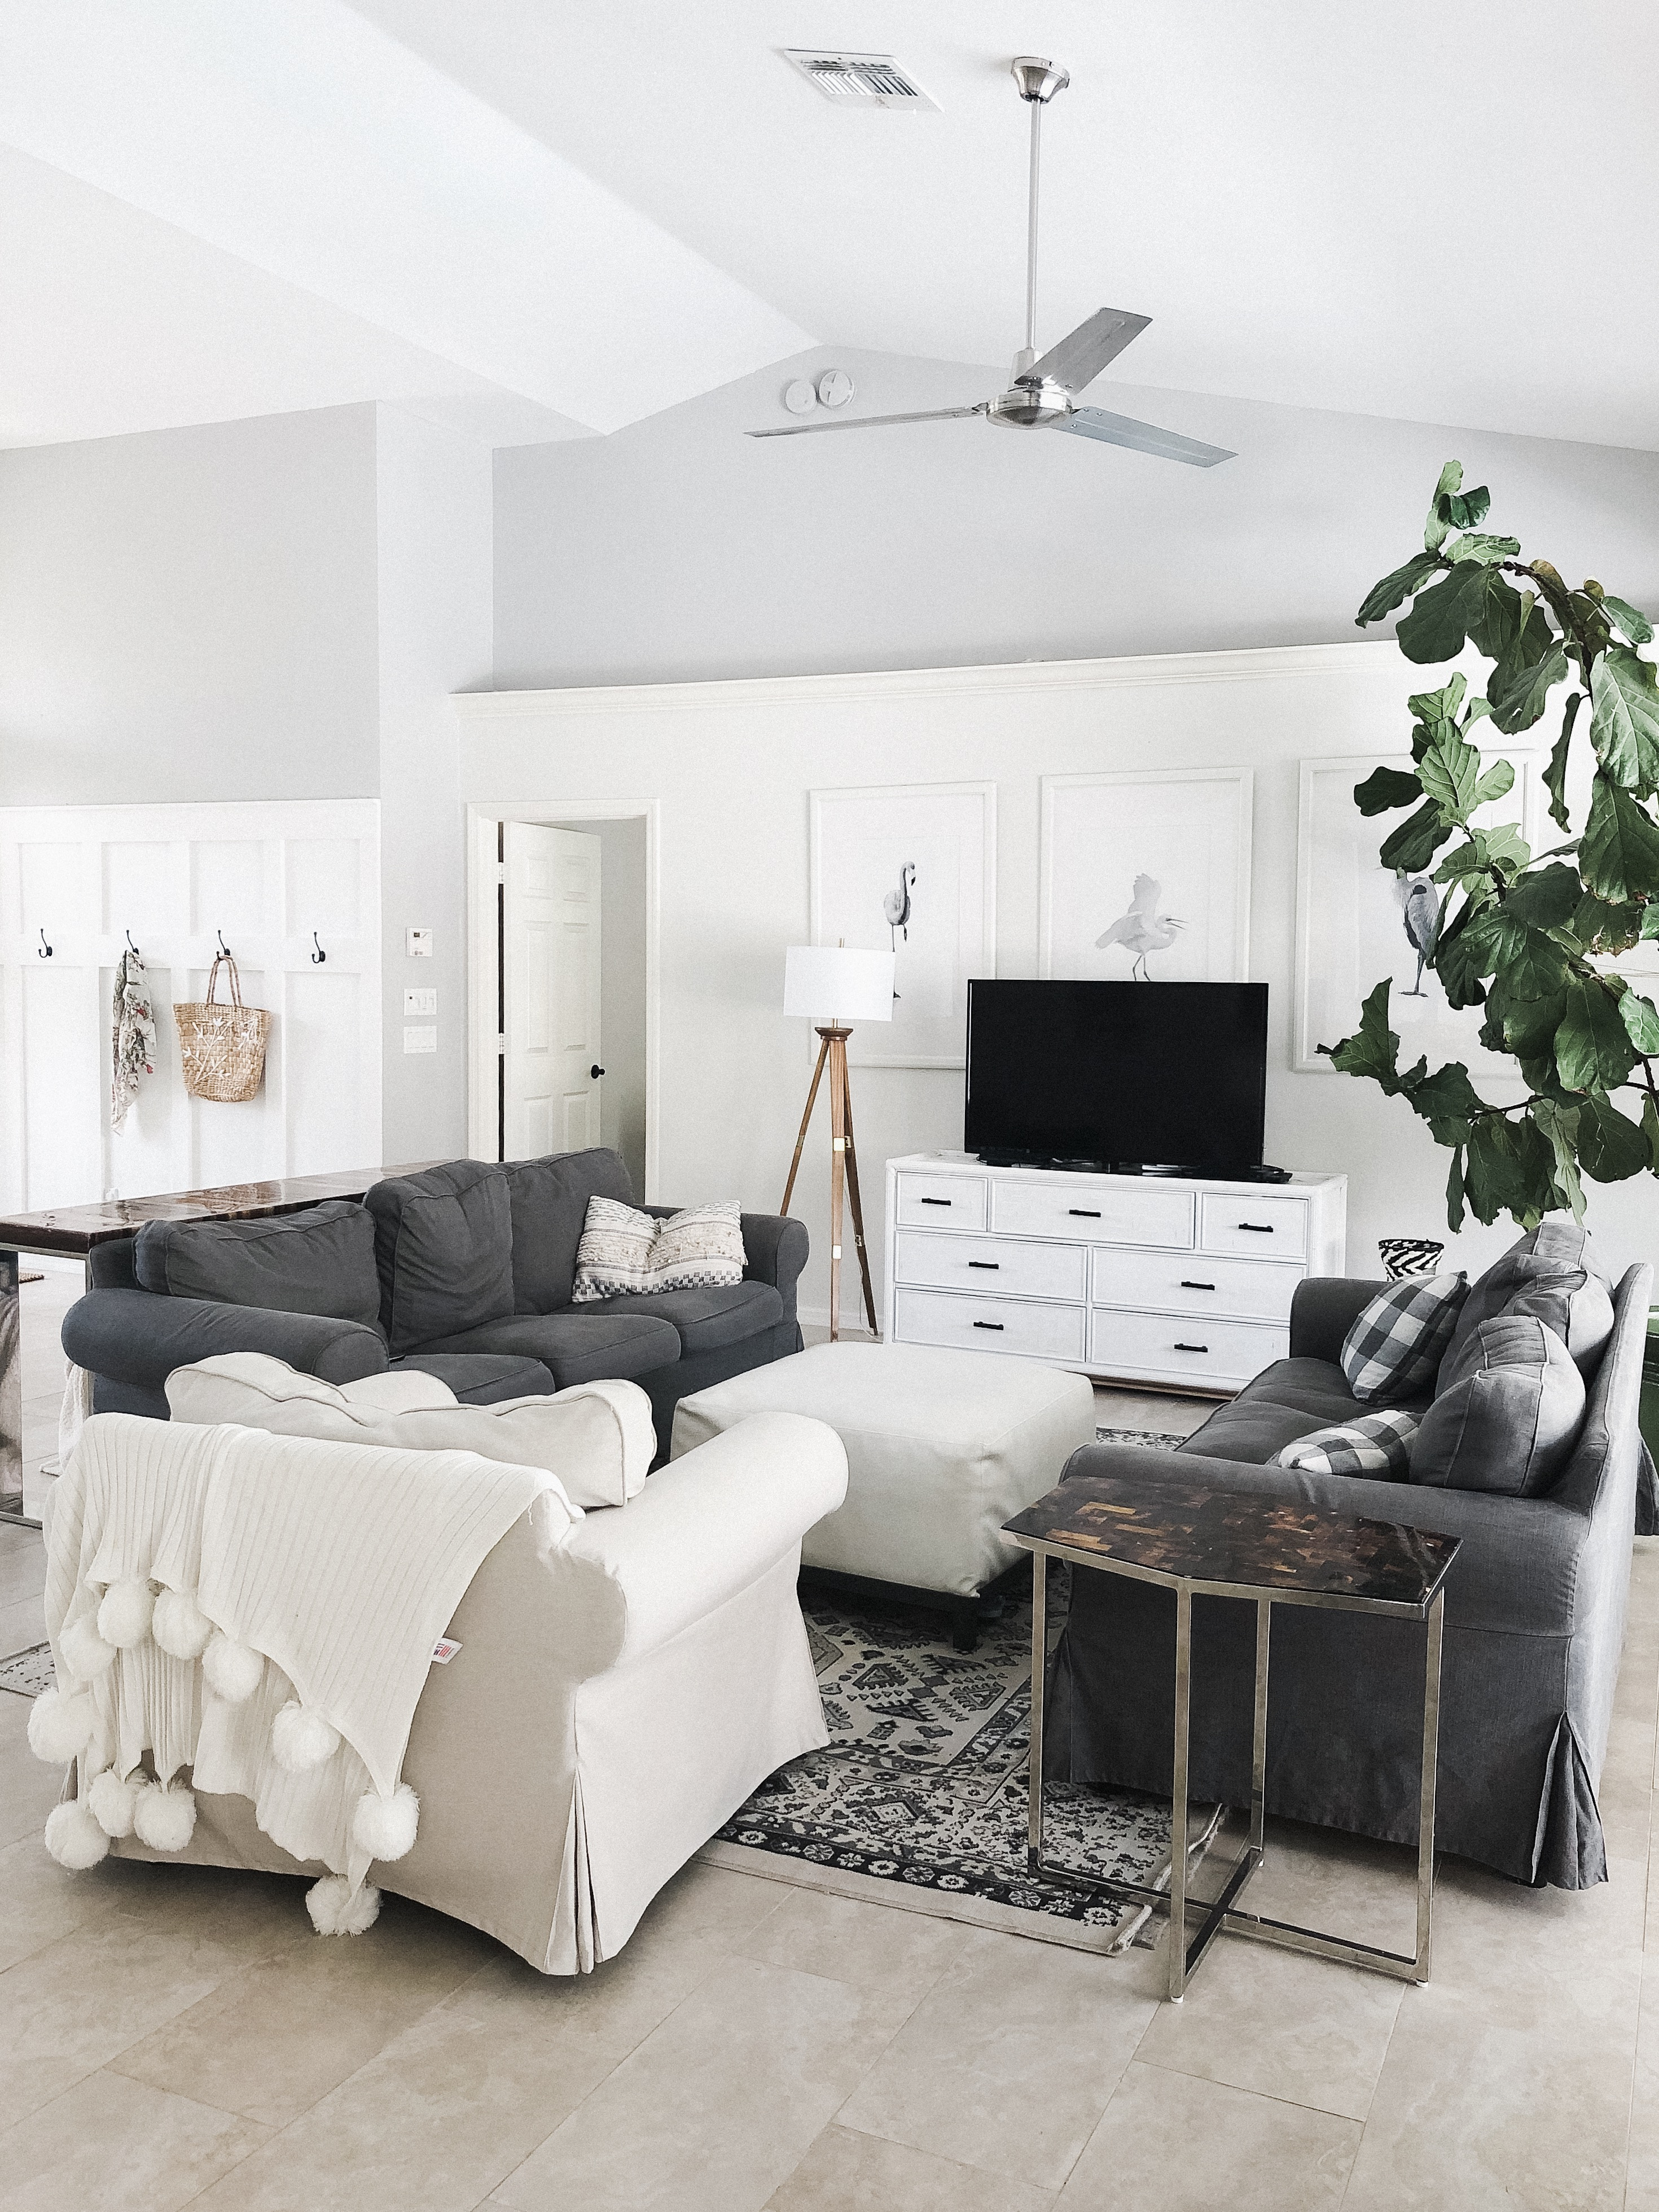 White and gray living room with board and batten wall